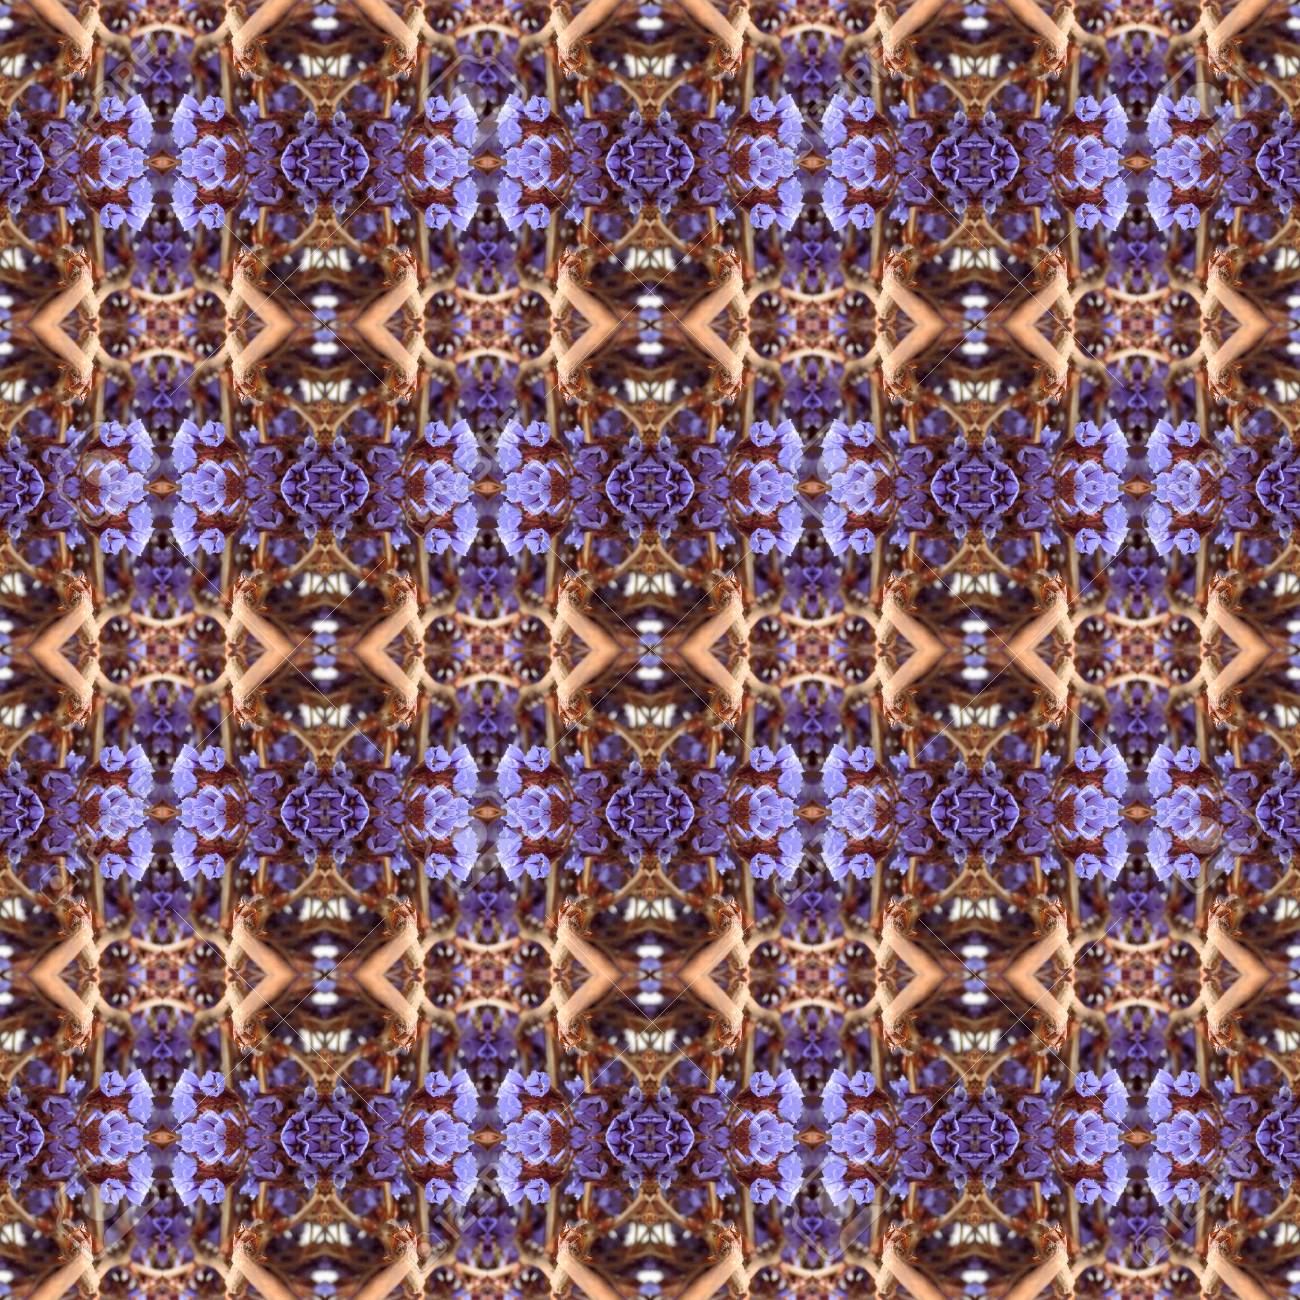 Abstract flowers seamless pattern background. Kaleidoscope from flowers. Hydraulic tile design. - 104075082